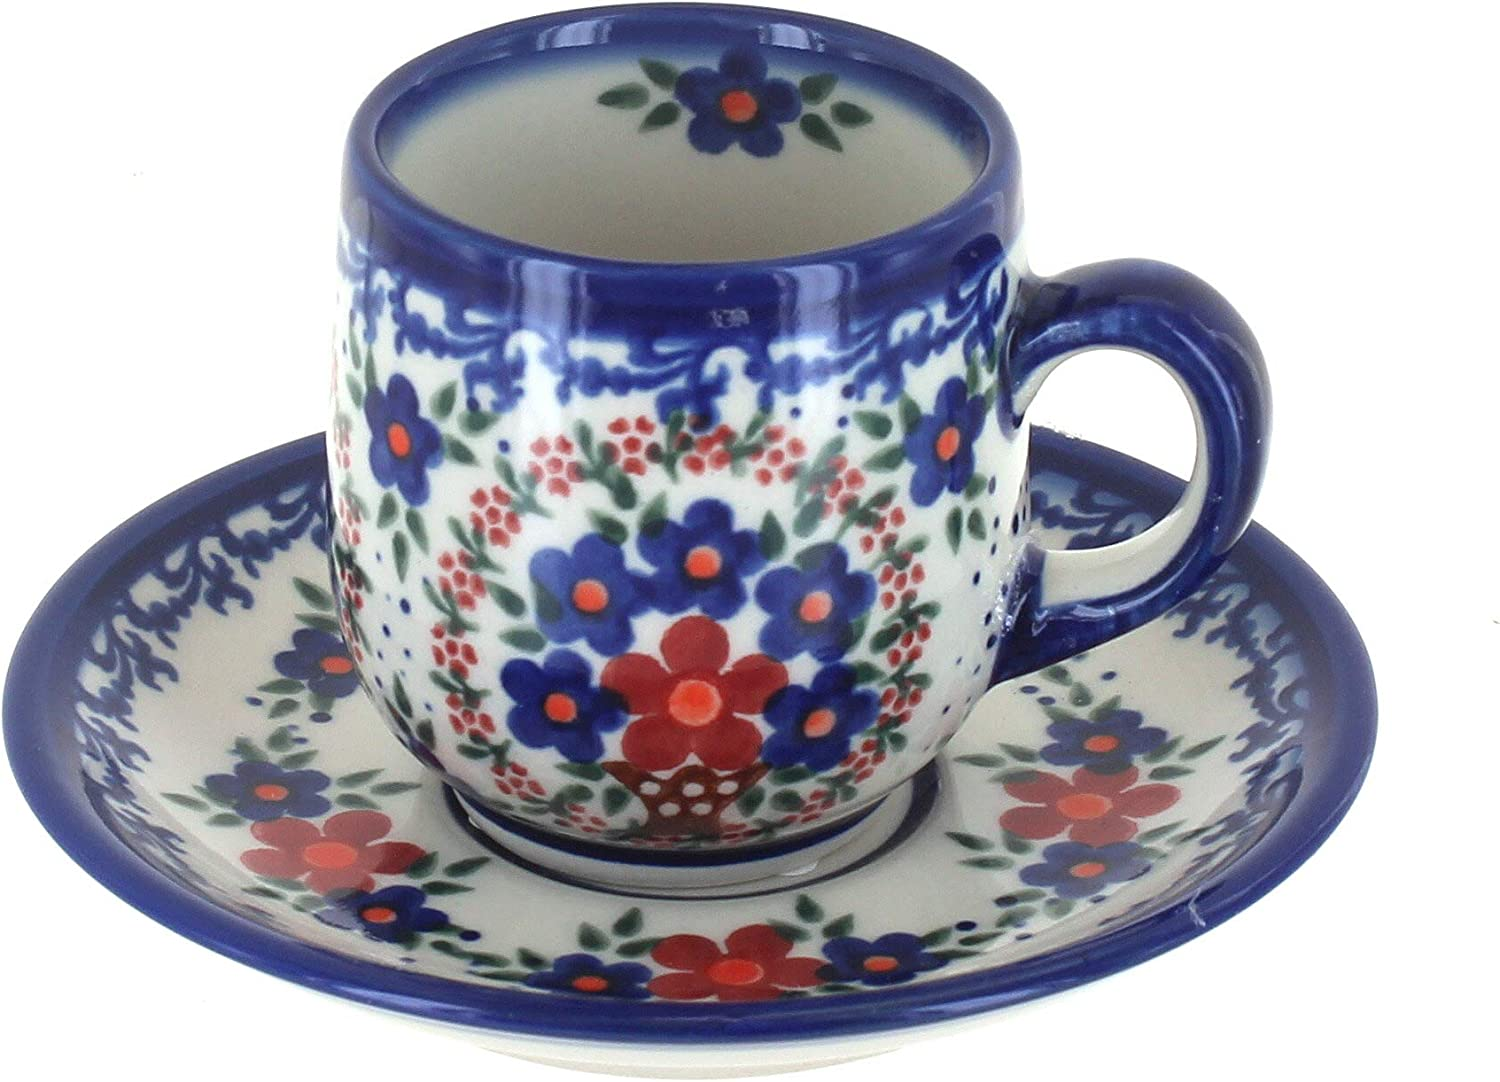 2021new shipping free Blue Direct sale of manufacturer Rose Polish Pottery Old Espresso Cup Saucer Fashion